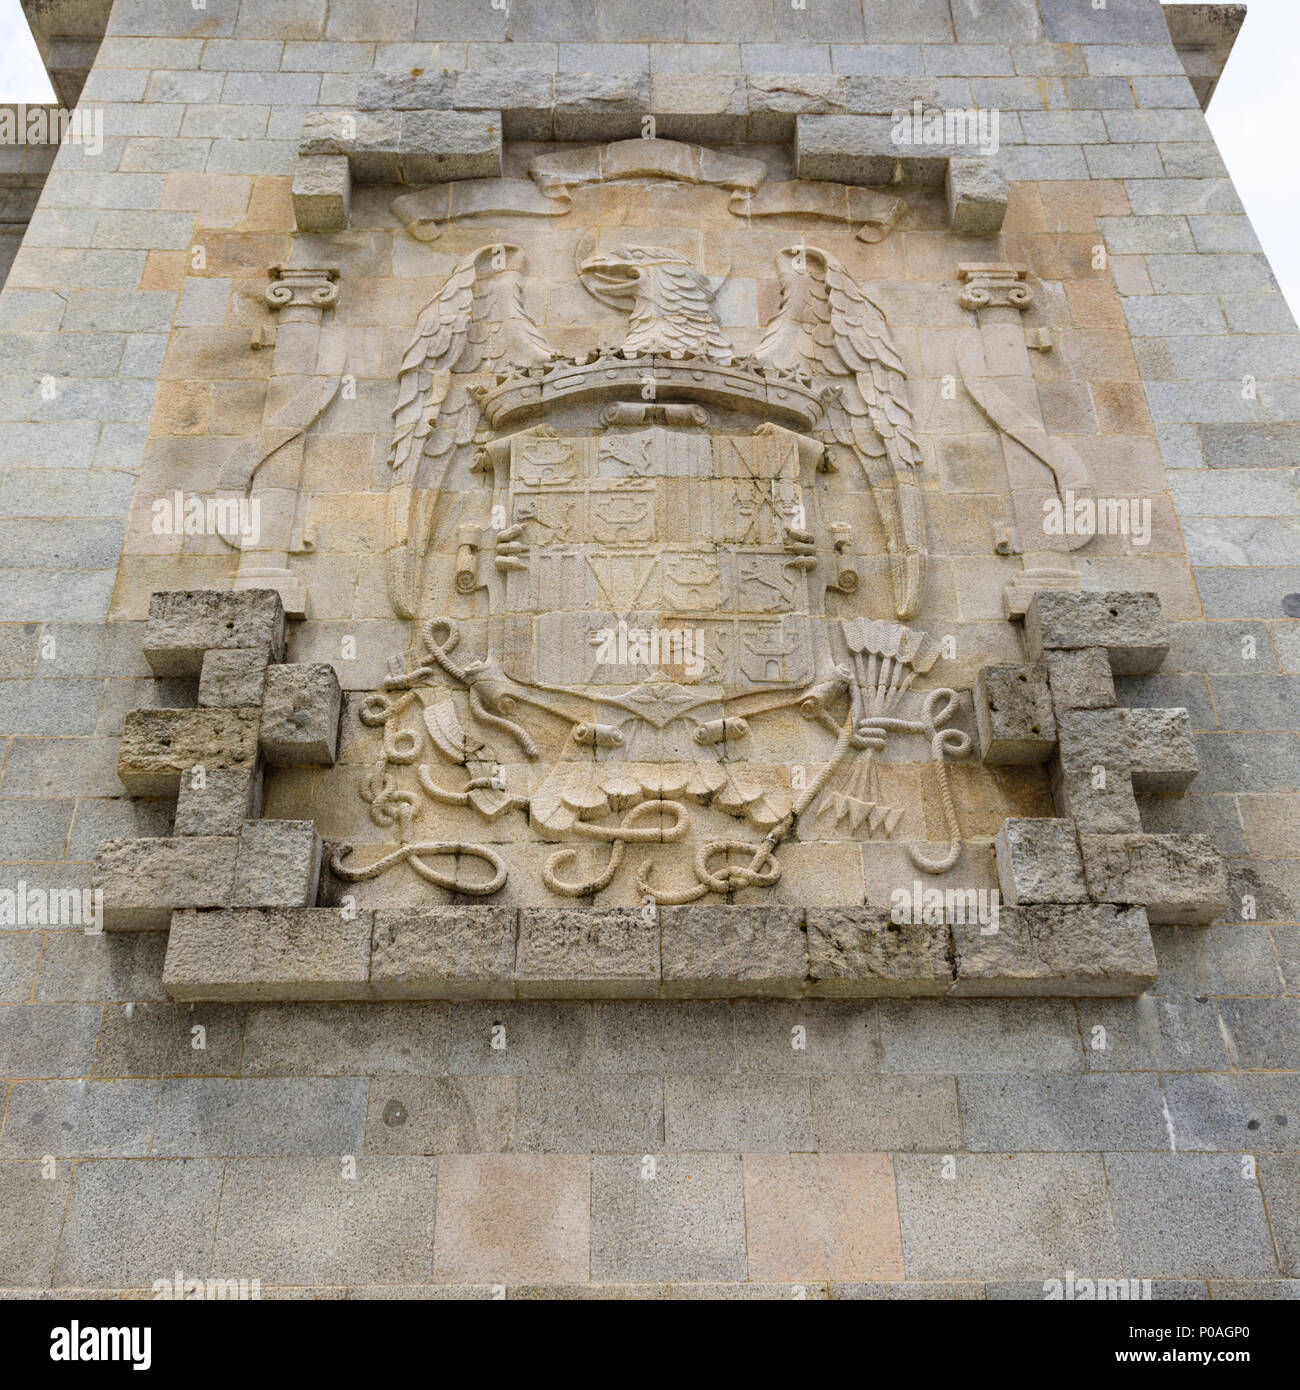 Coat of arms, Calle de Los Caidos, Valley of the Fallen. Roman Catholic monumental memorial to the Spanish Civil War. Madrid, Spain. May 2018 Stock Photo